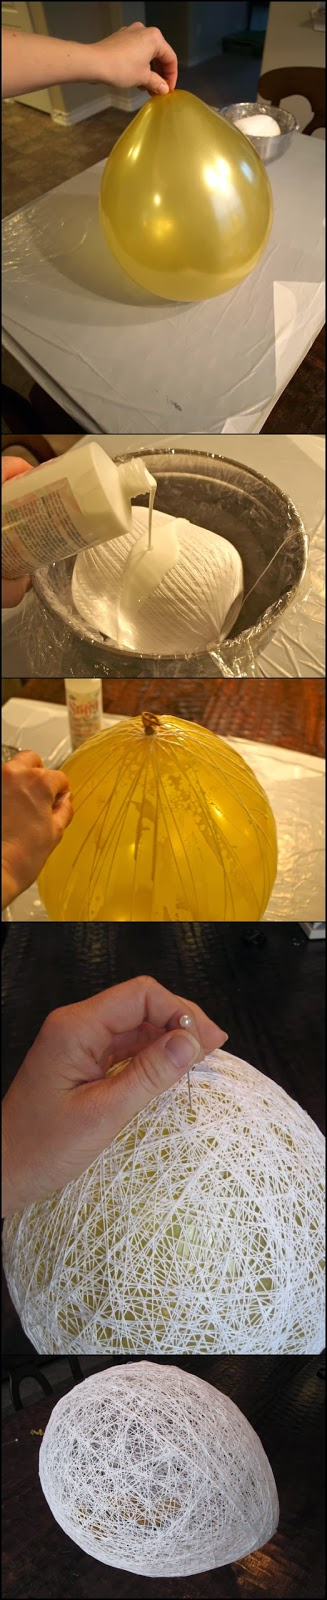 Make an Egg Shaped Easter Basket From String